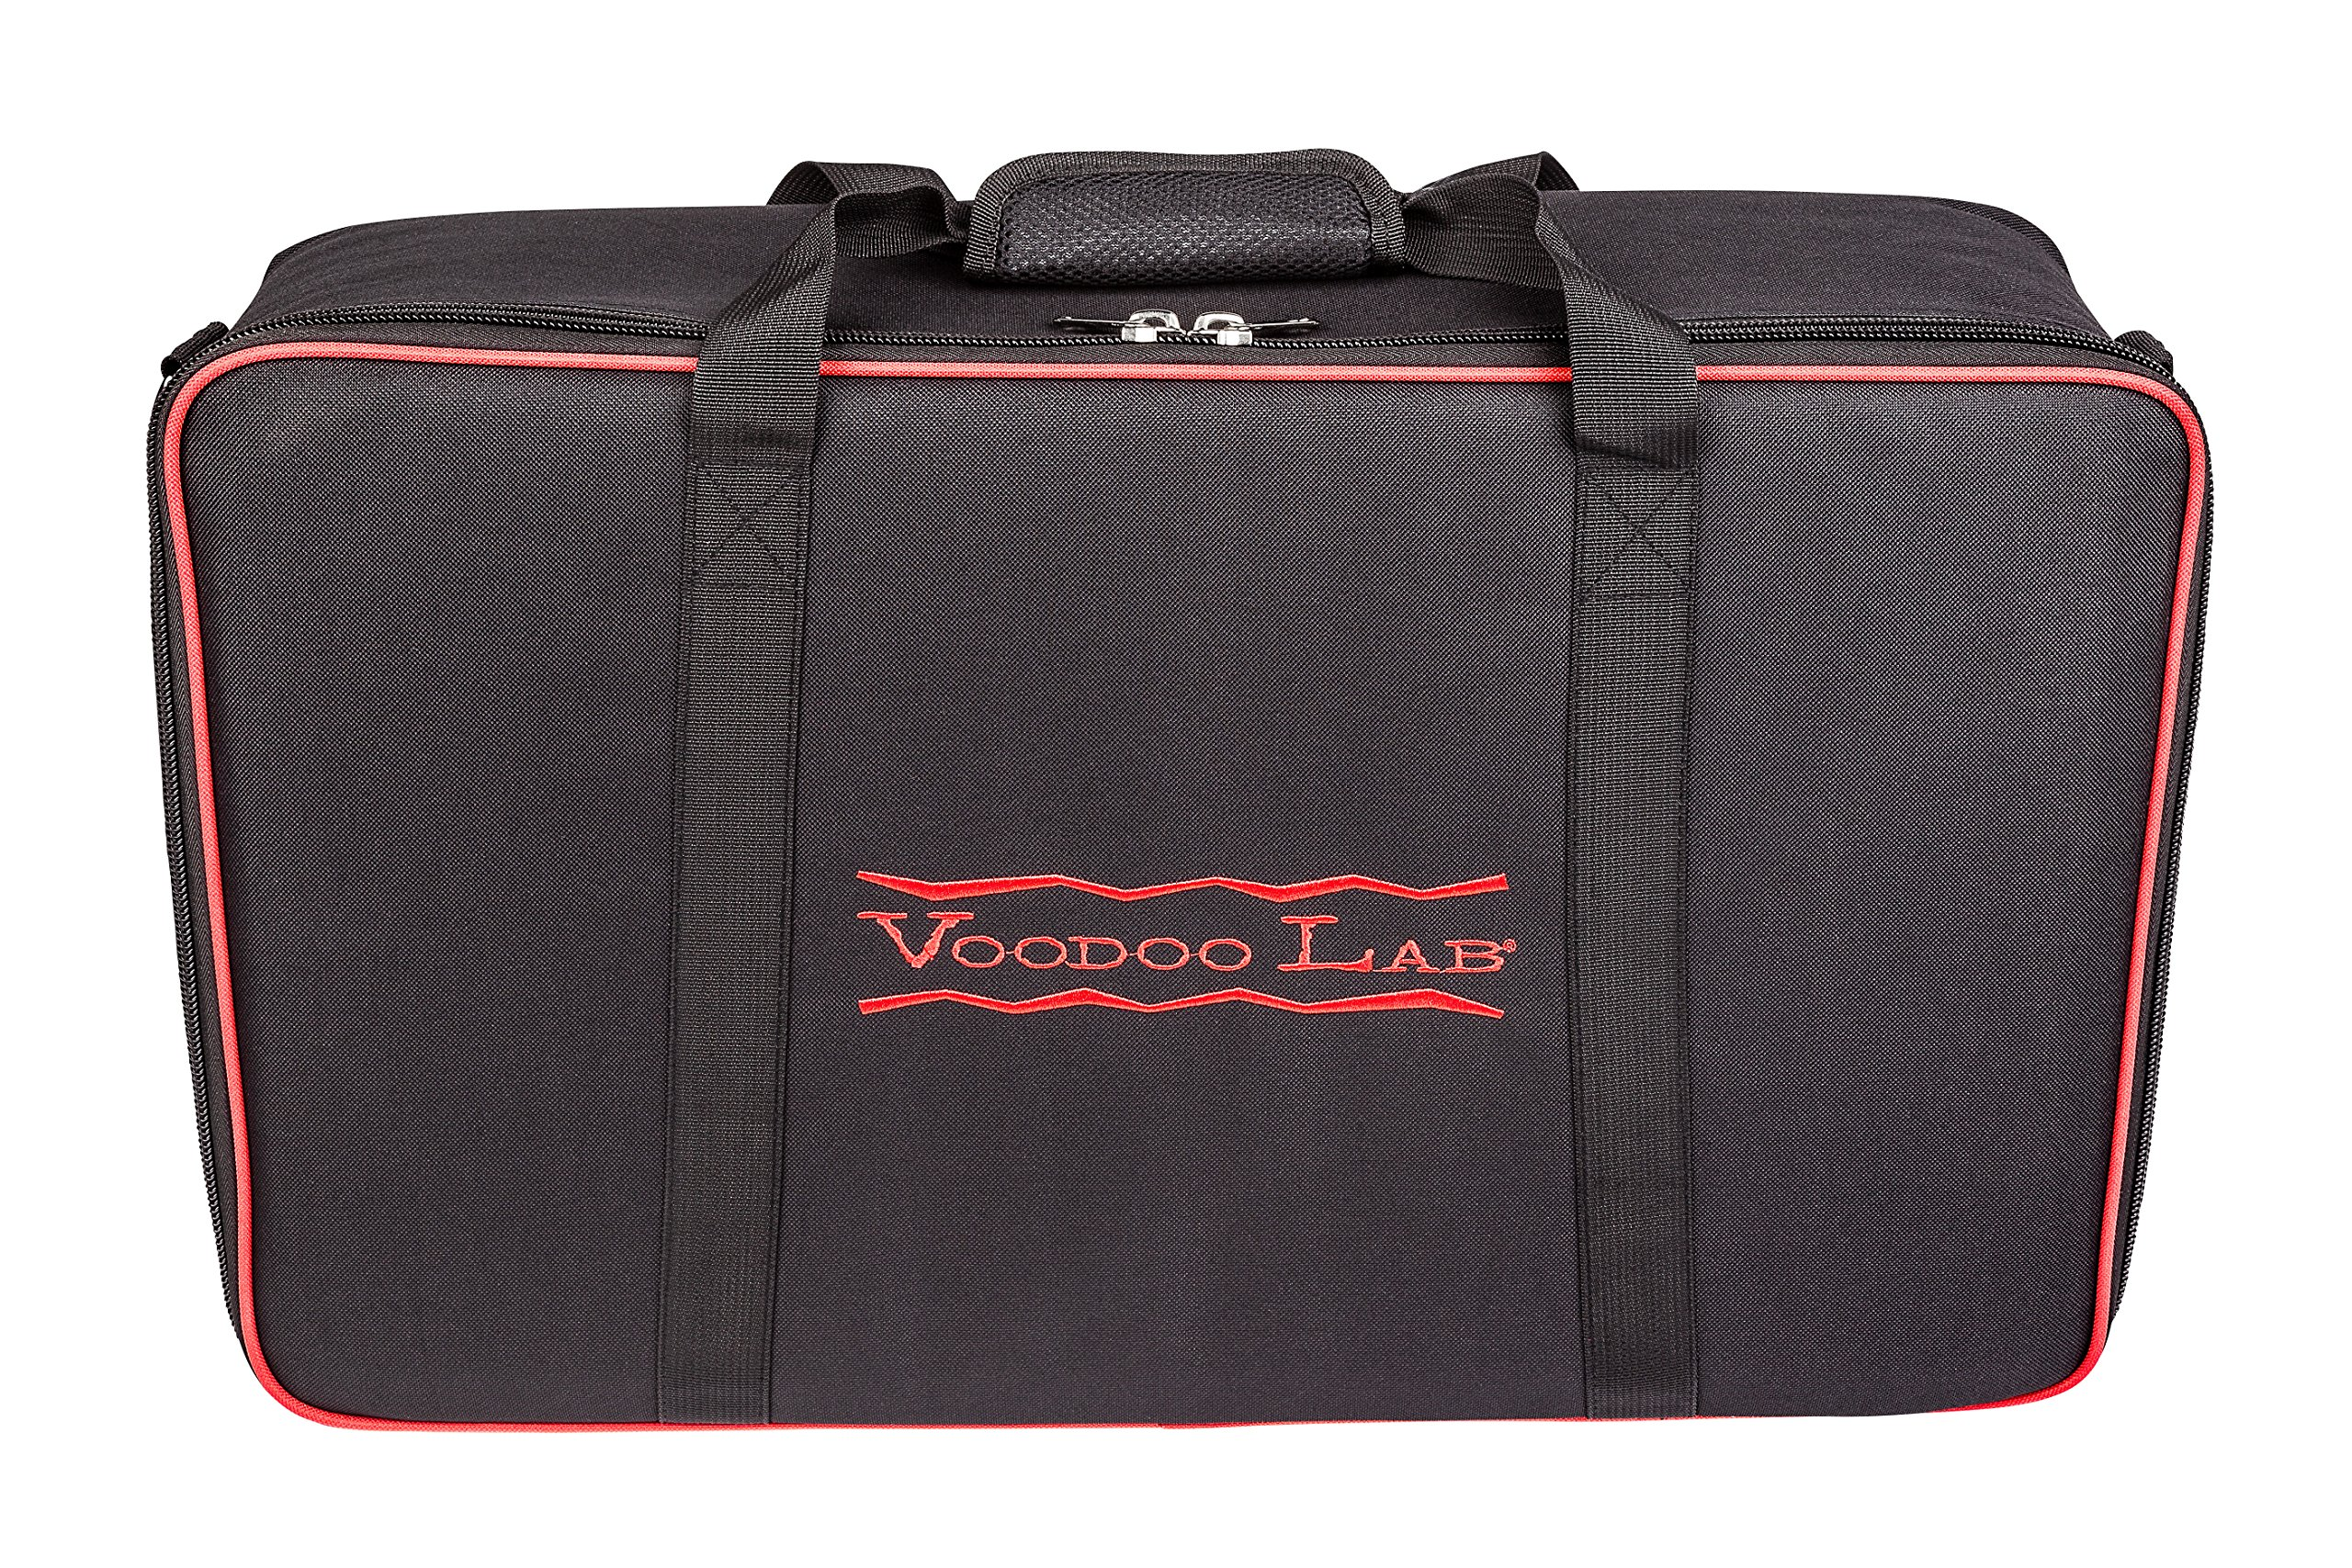 Voodoo Lab Dingbat Medium Pedalboard with Pedal Power 4x4 Power Supply & Bag by Voodoo Lab (Image #10)